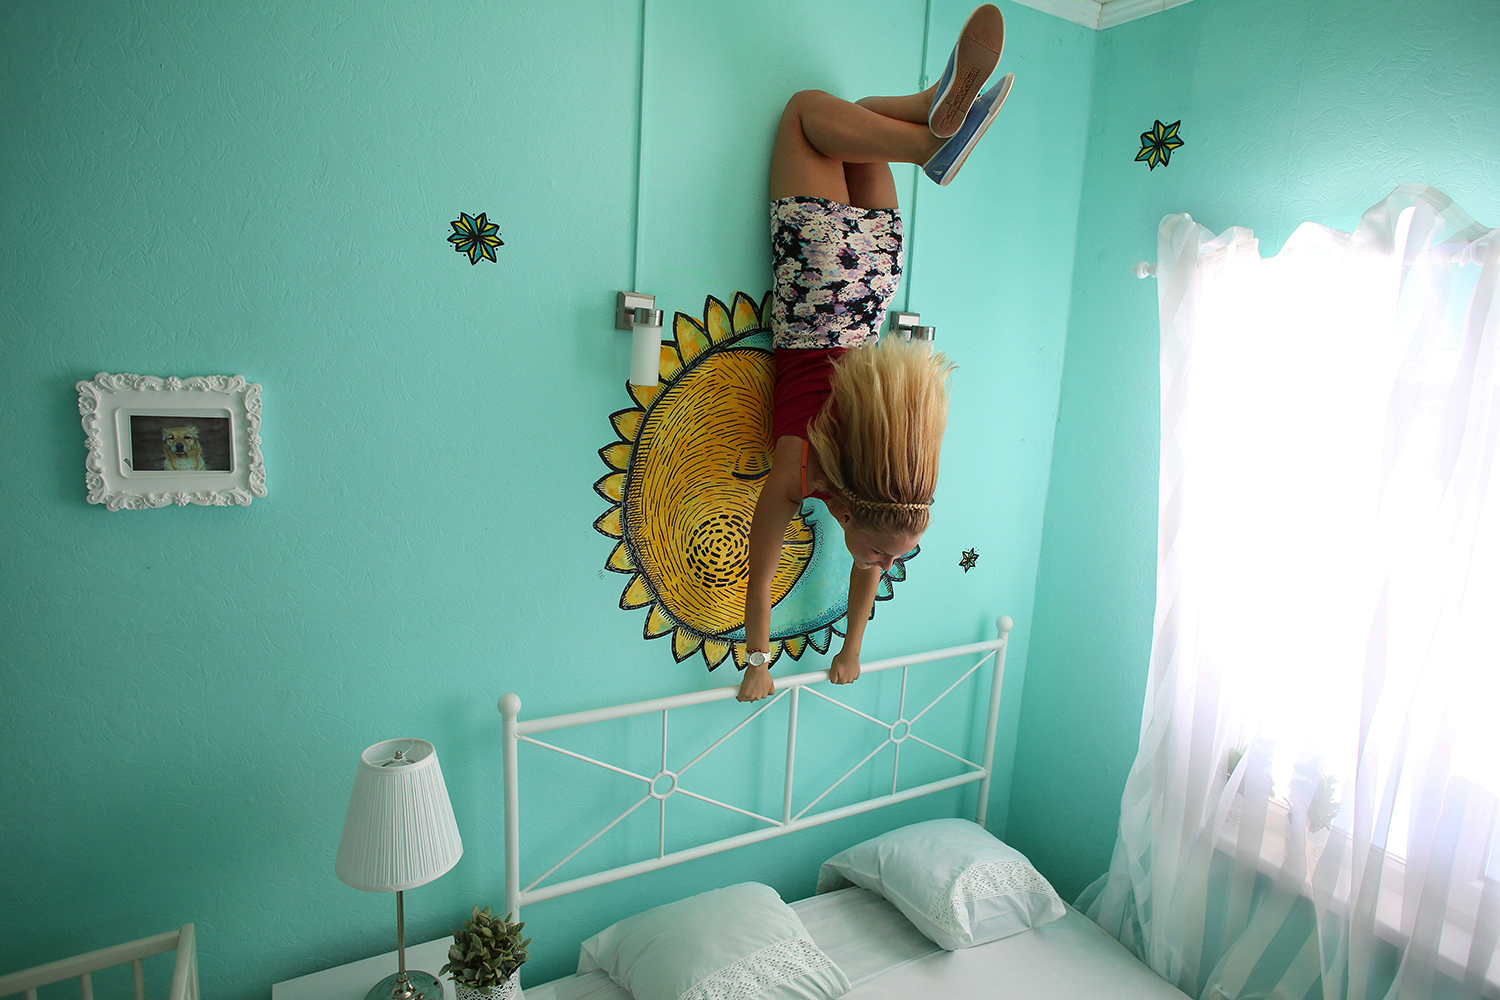 A visitor poses in an upside-down house, in St.Petersburg, Russia, where the floor becomes  the ceiling and furniture appears to defy gravity,  July 25, 2014.